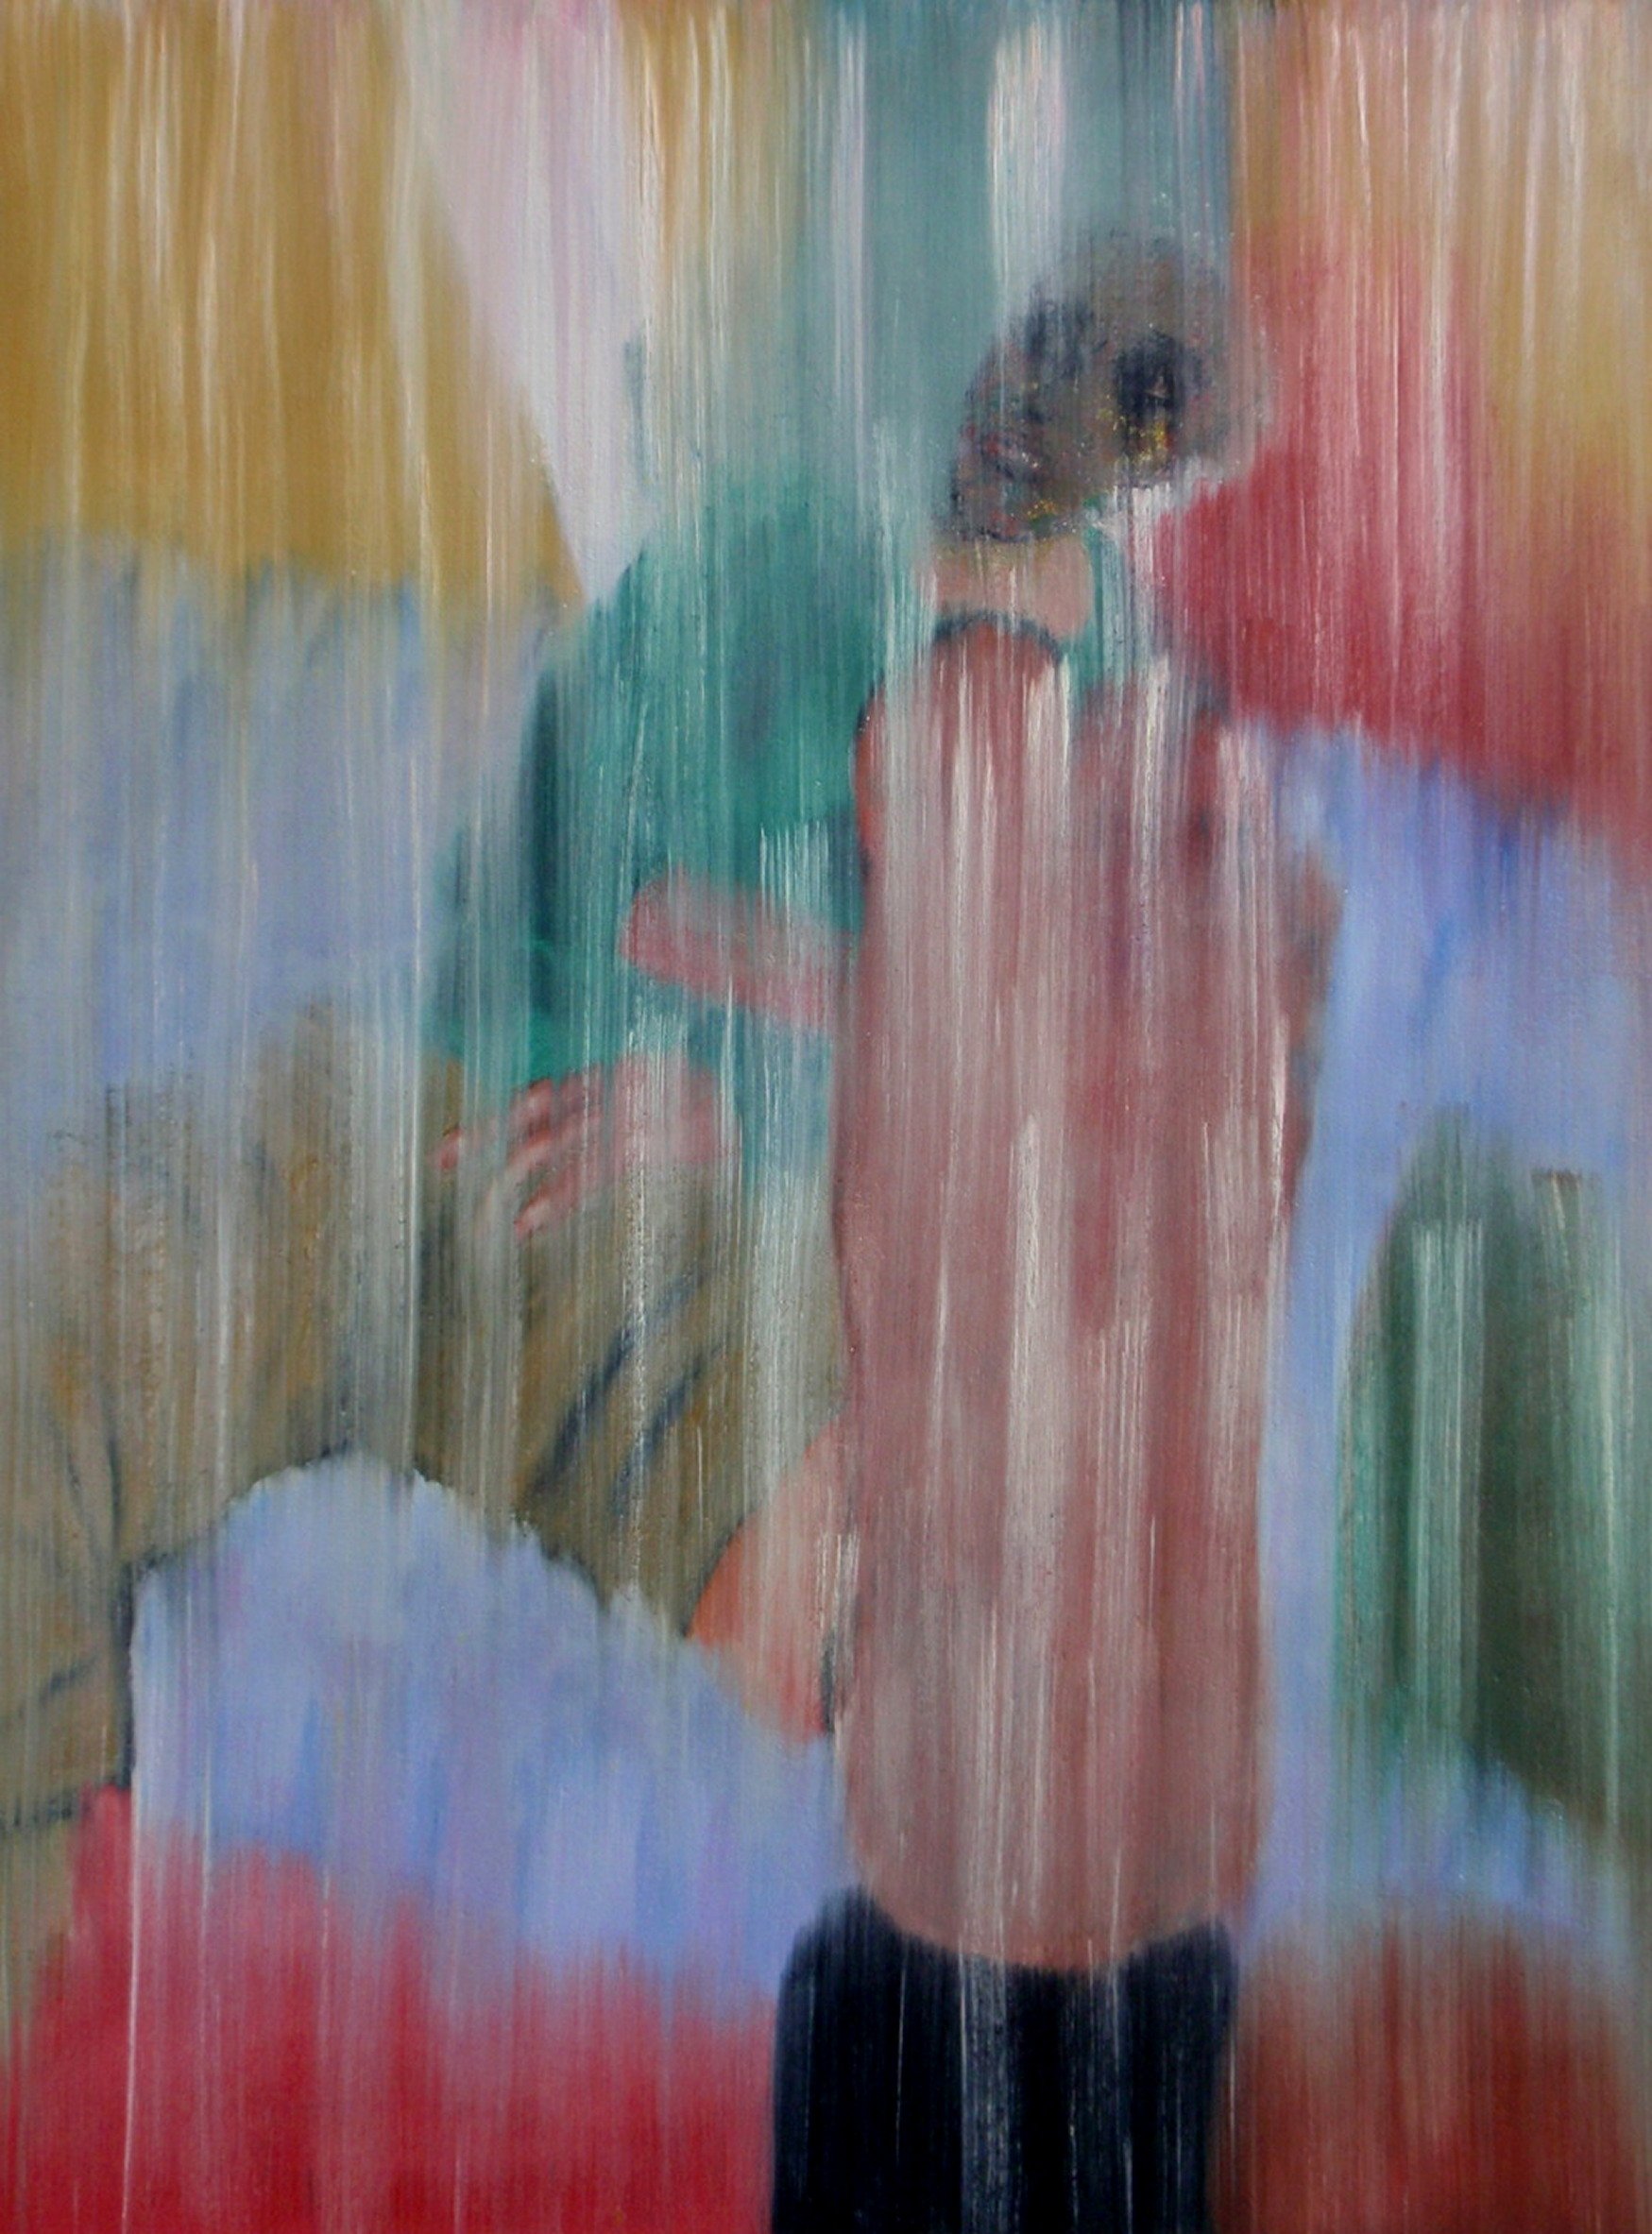 1986. Marianne. Oil on panel. 80x60 cm.